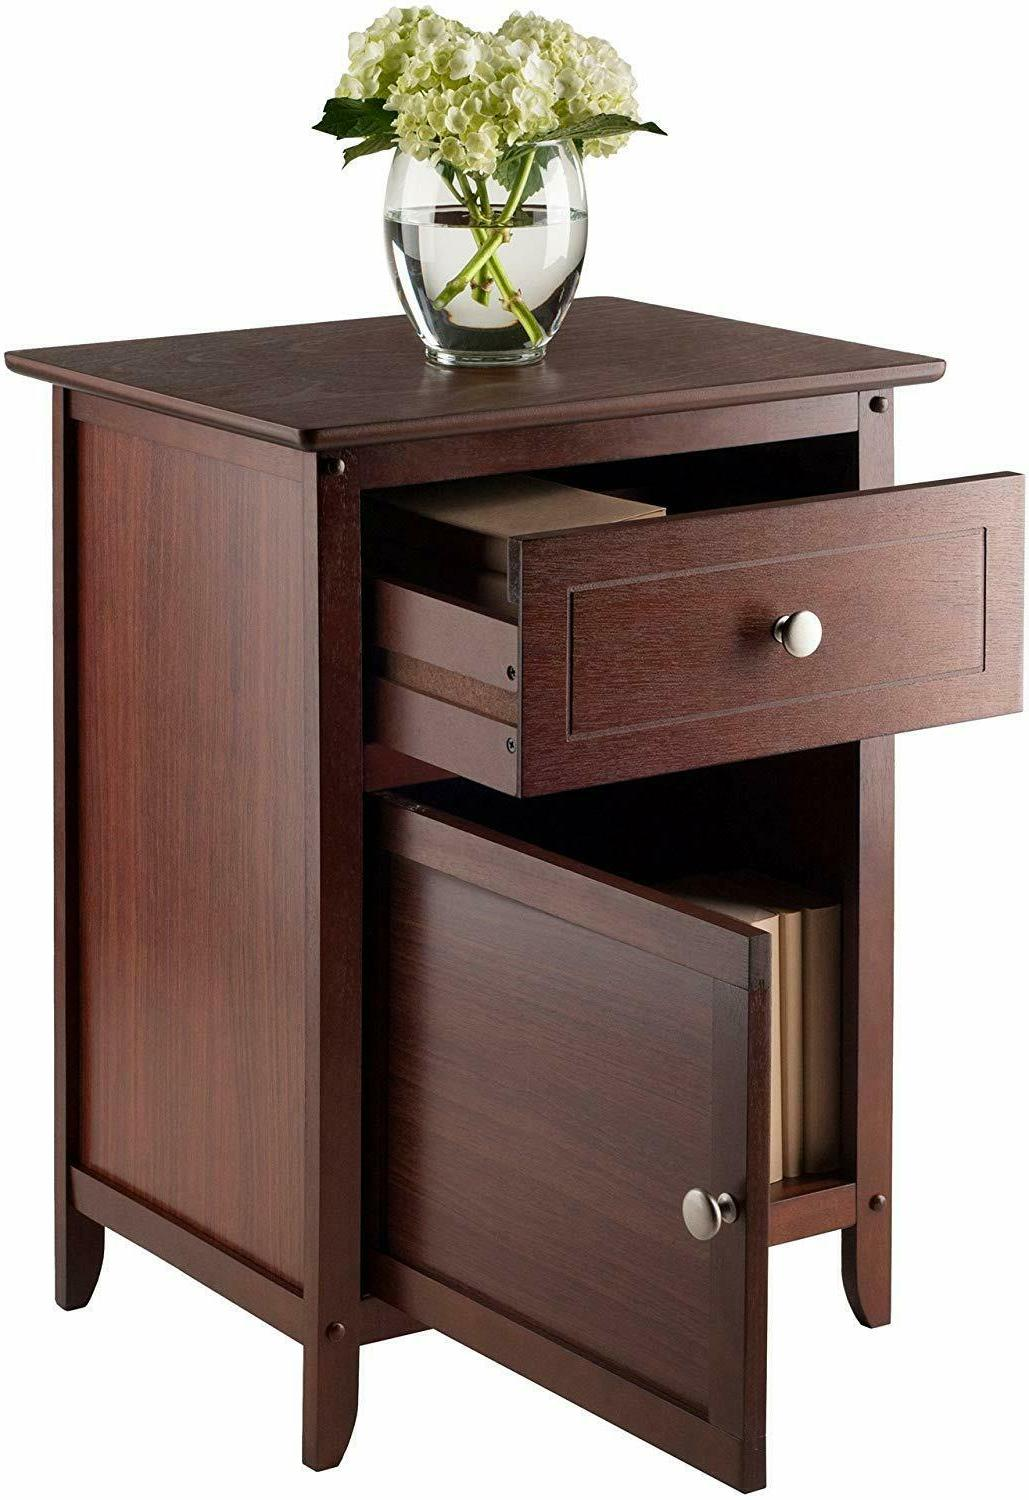 Bed Room Stand Storage Accent Table Finish